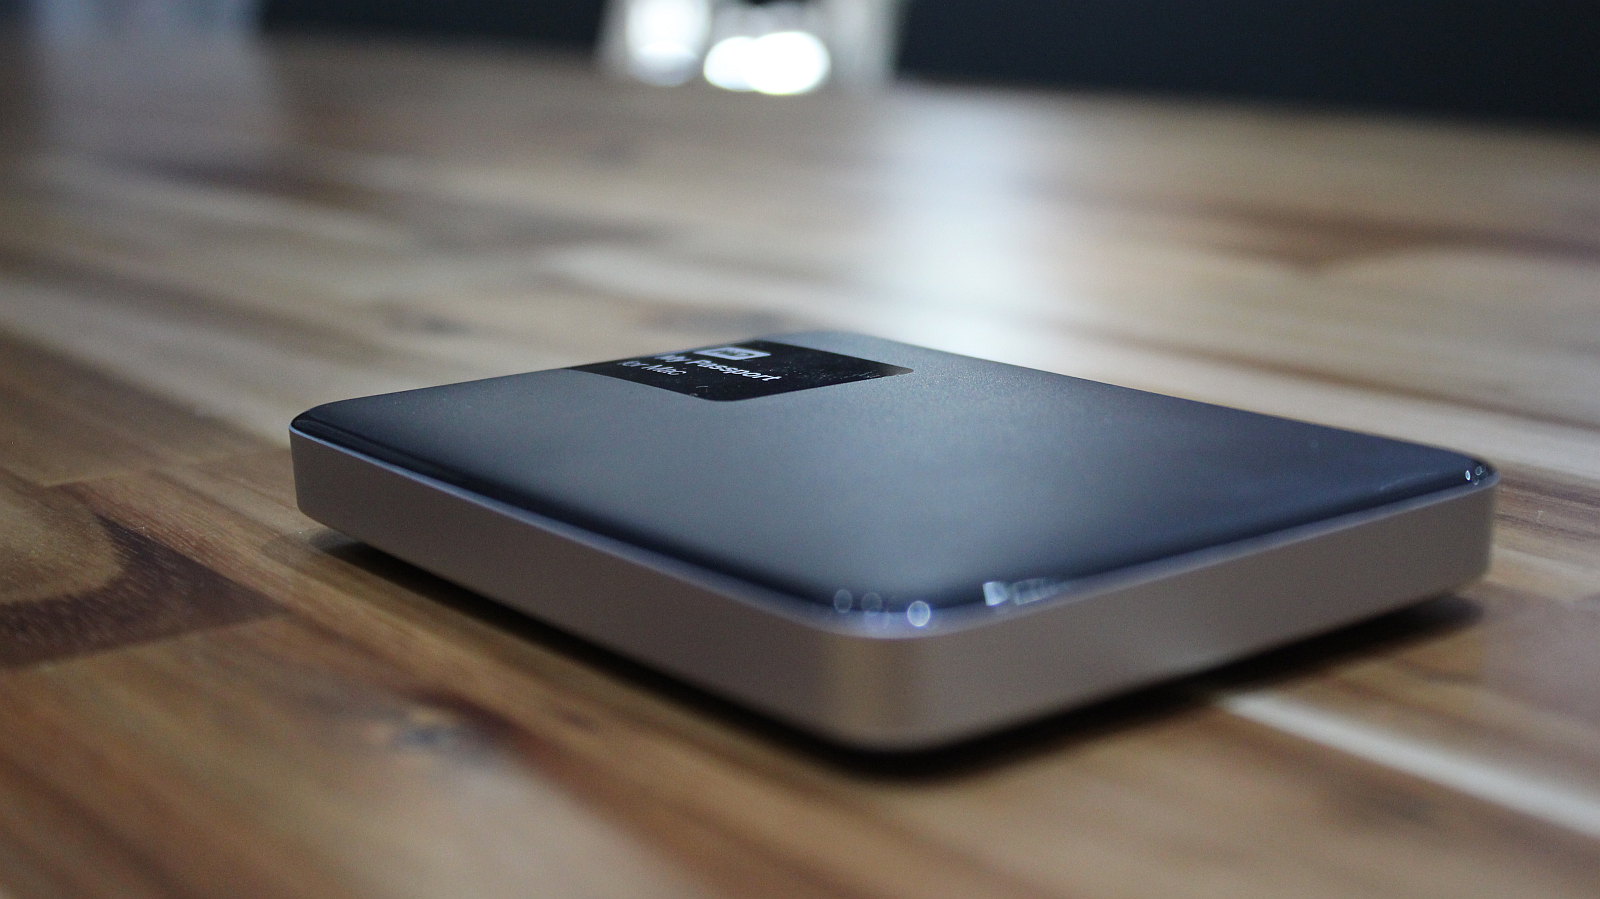 WD My Passport for Mac review: reliable external storage for